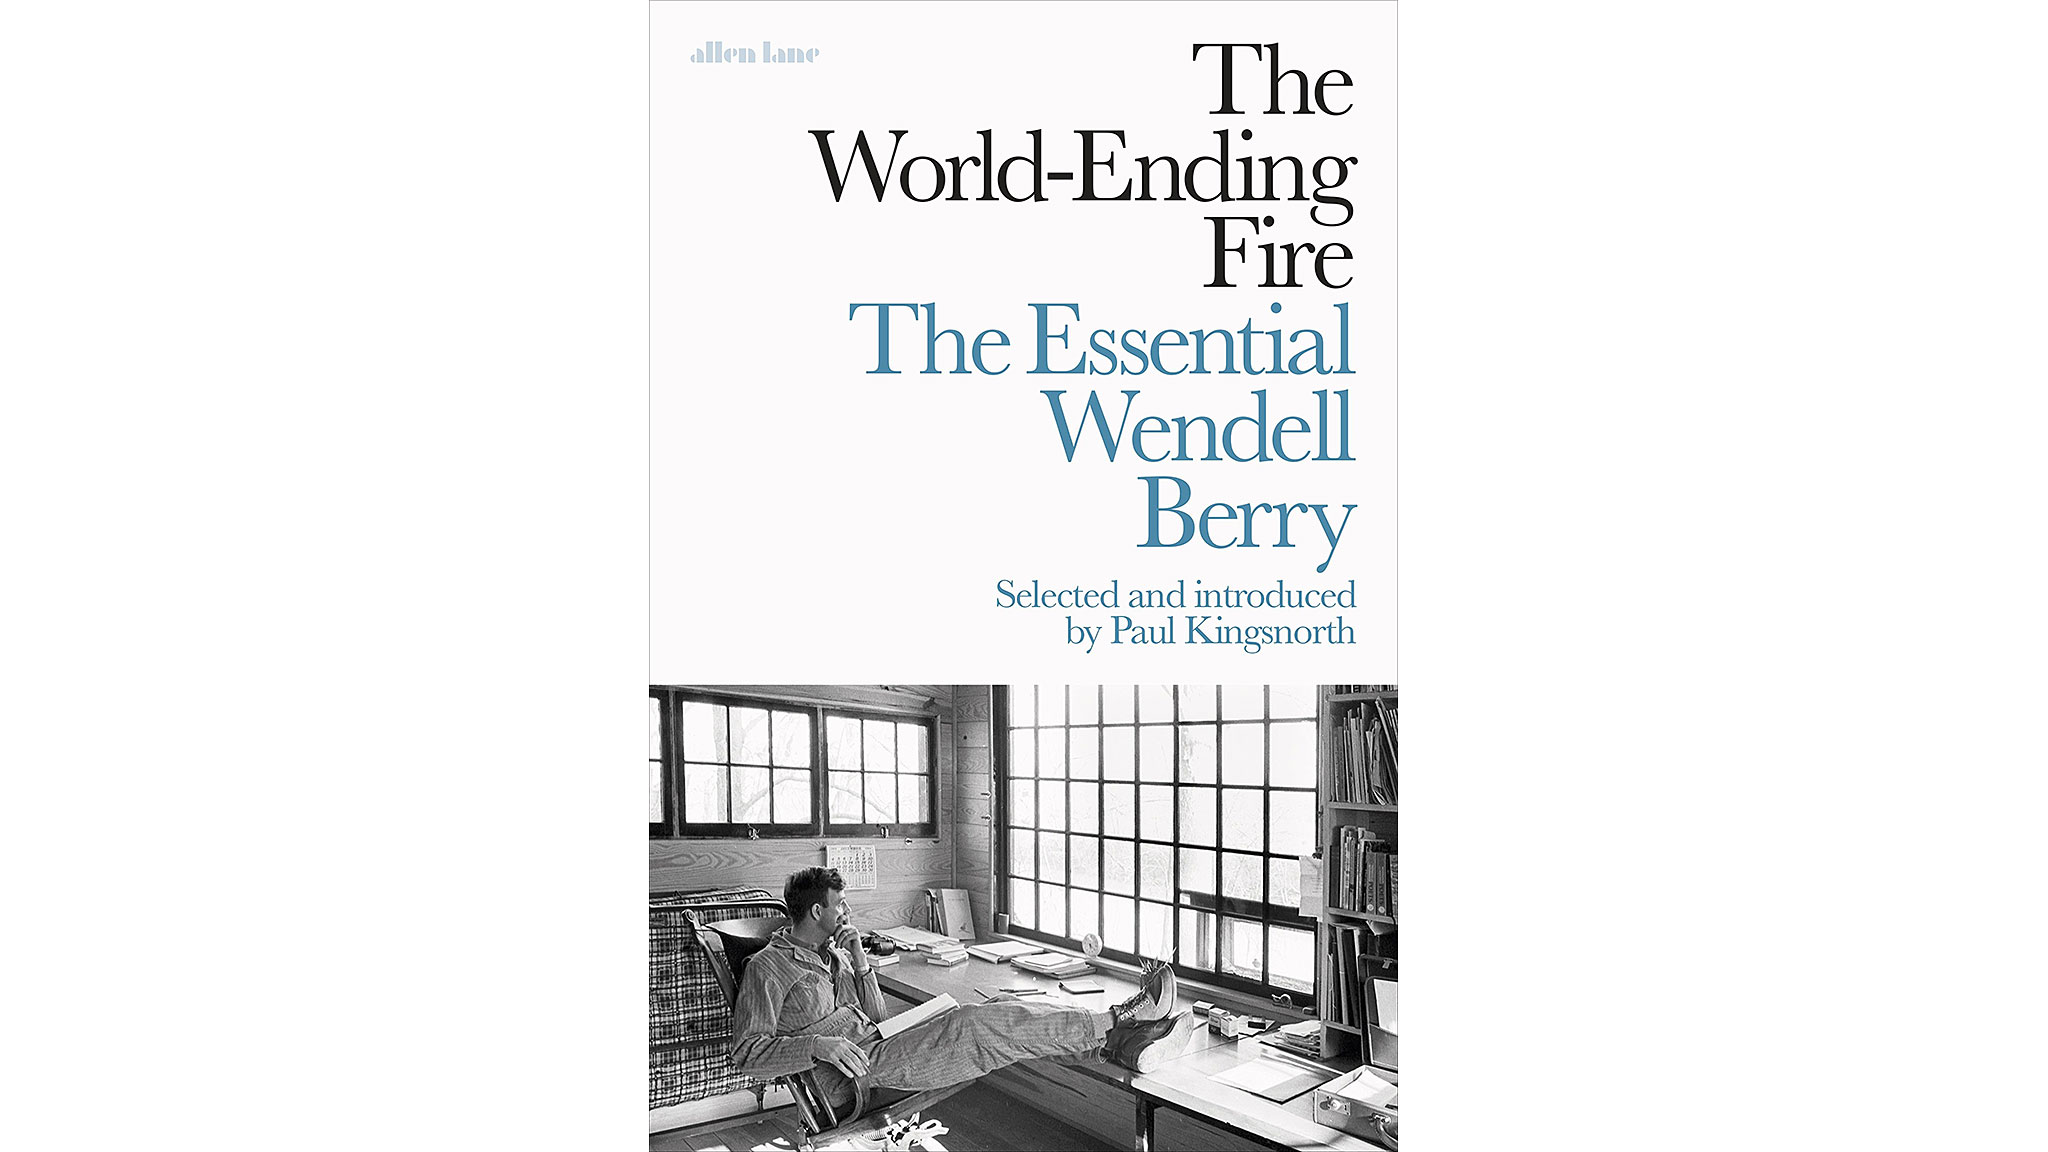 the world ending fire by wendell berry a land under threat